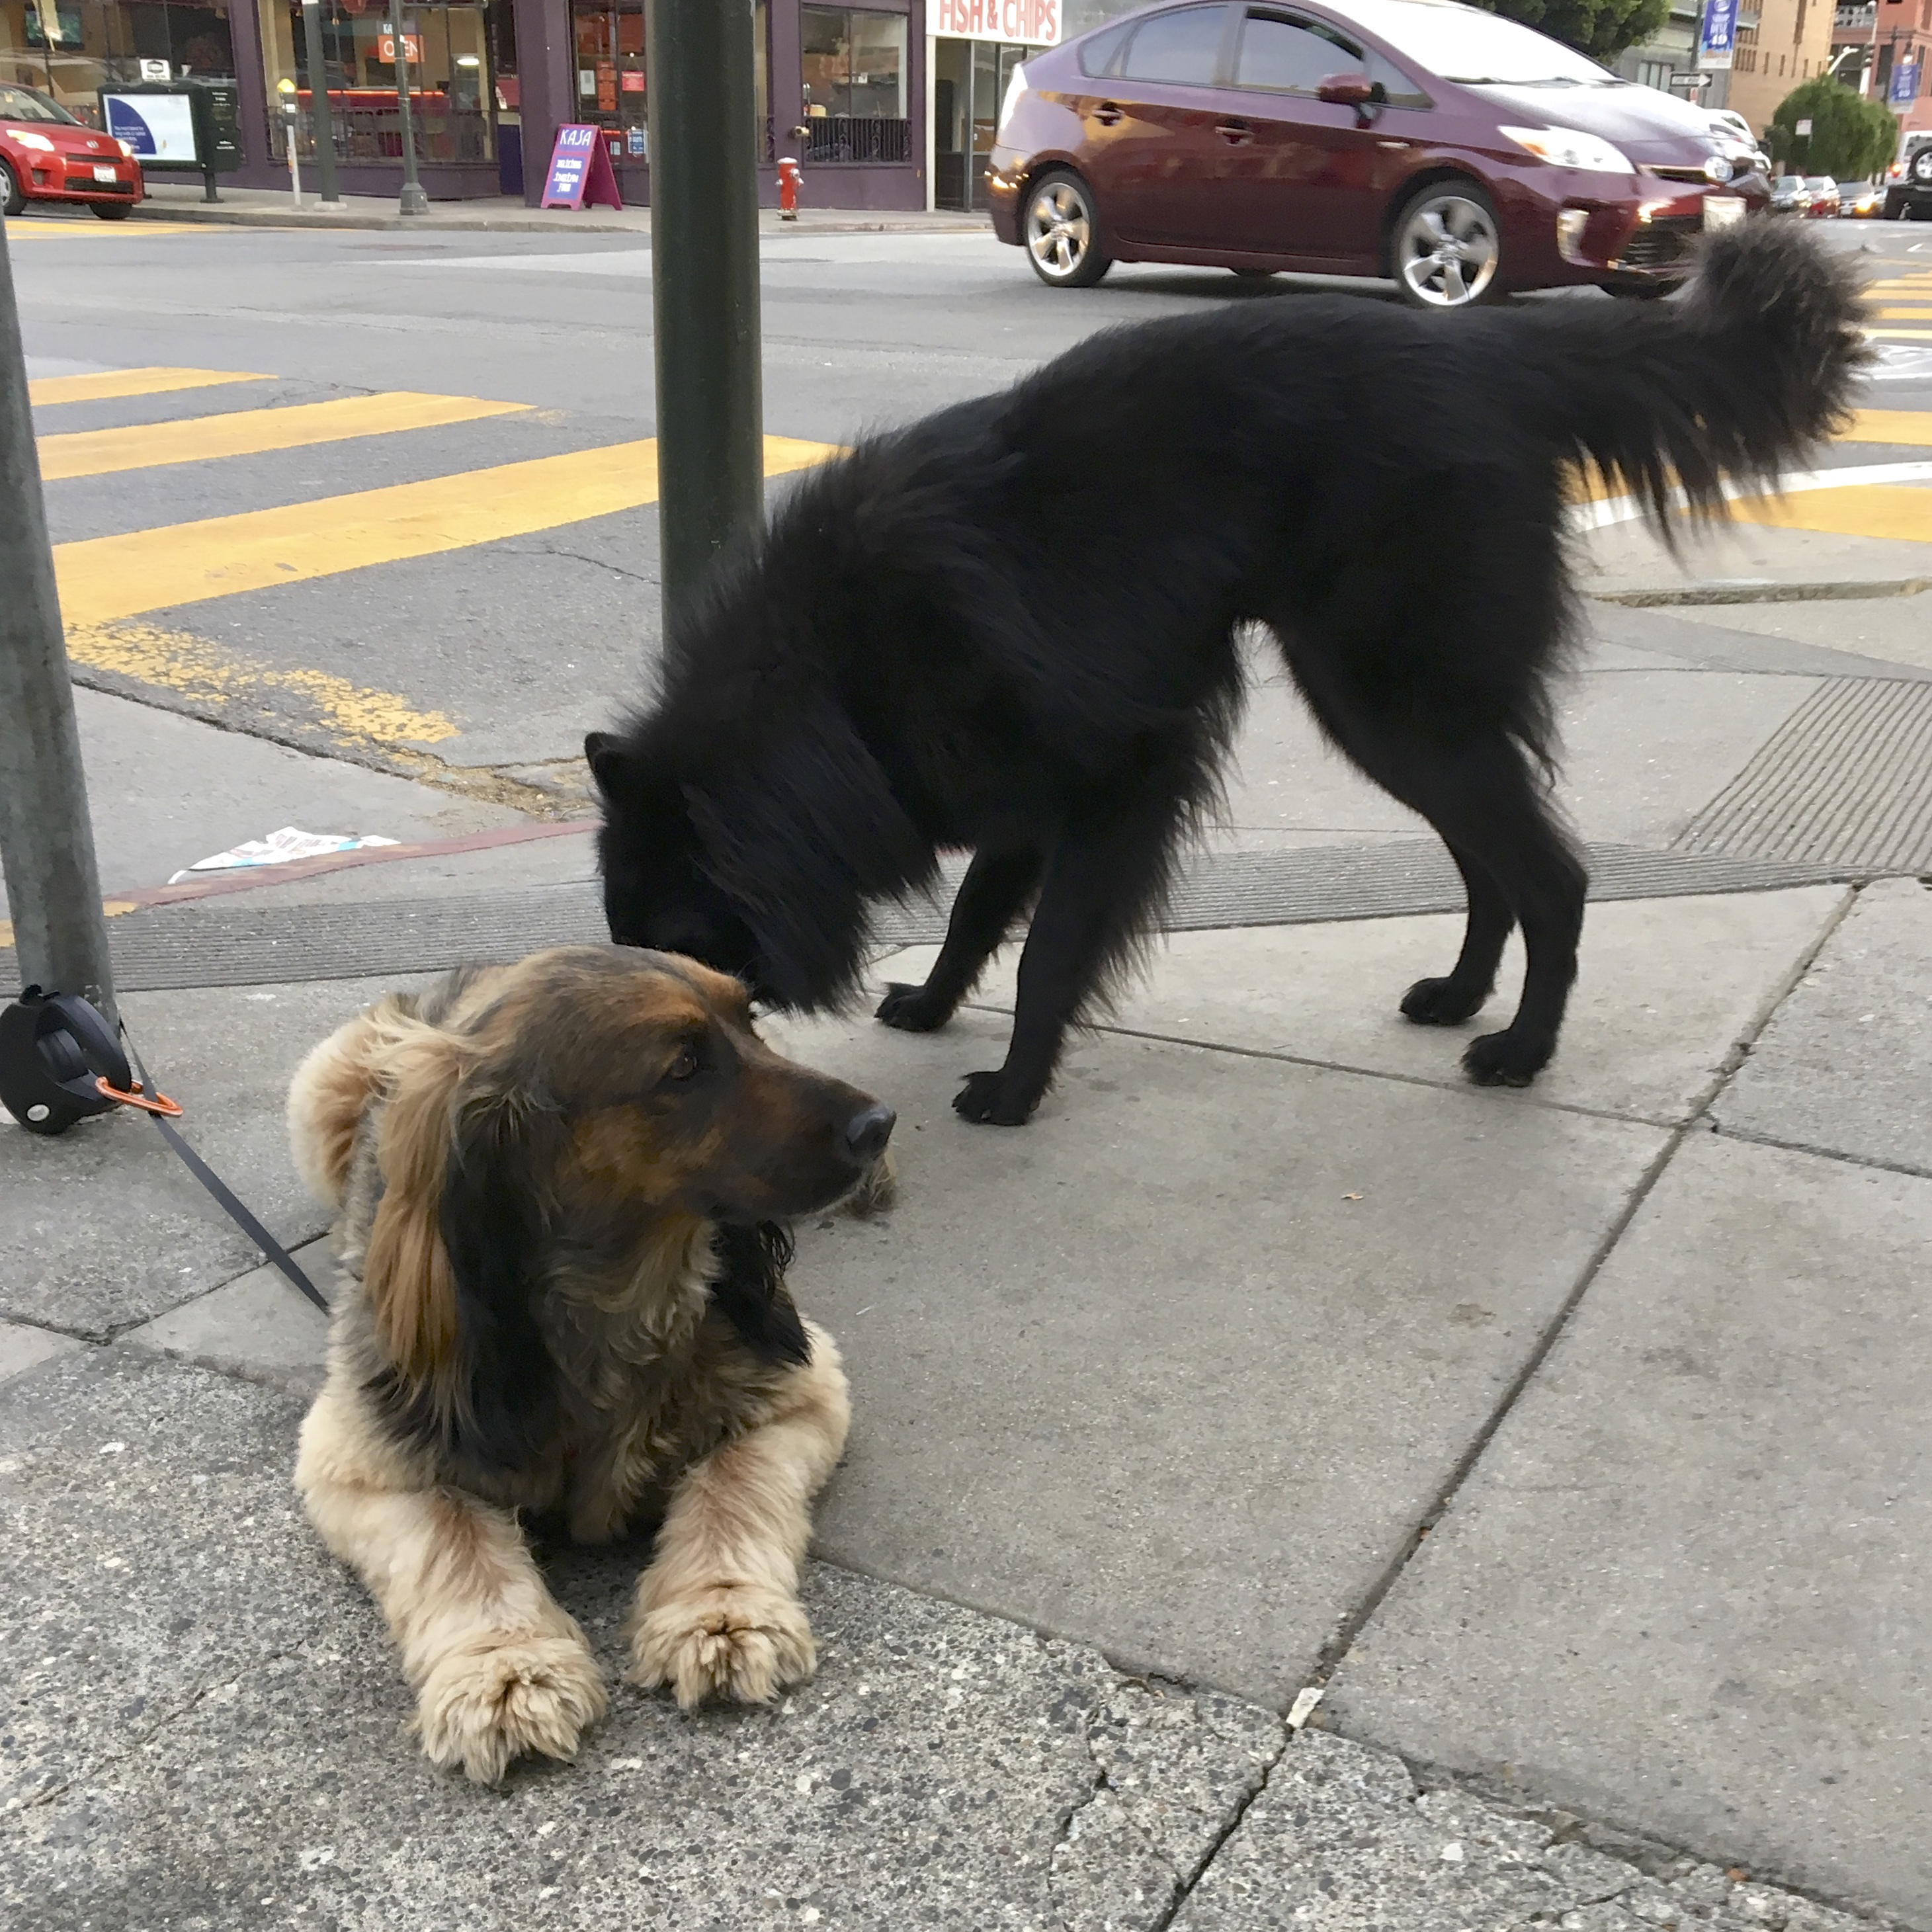 Black Fluffy Dog Sniffing Brown And Black Fluffy Dog's Butt